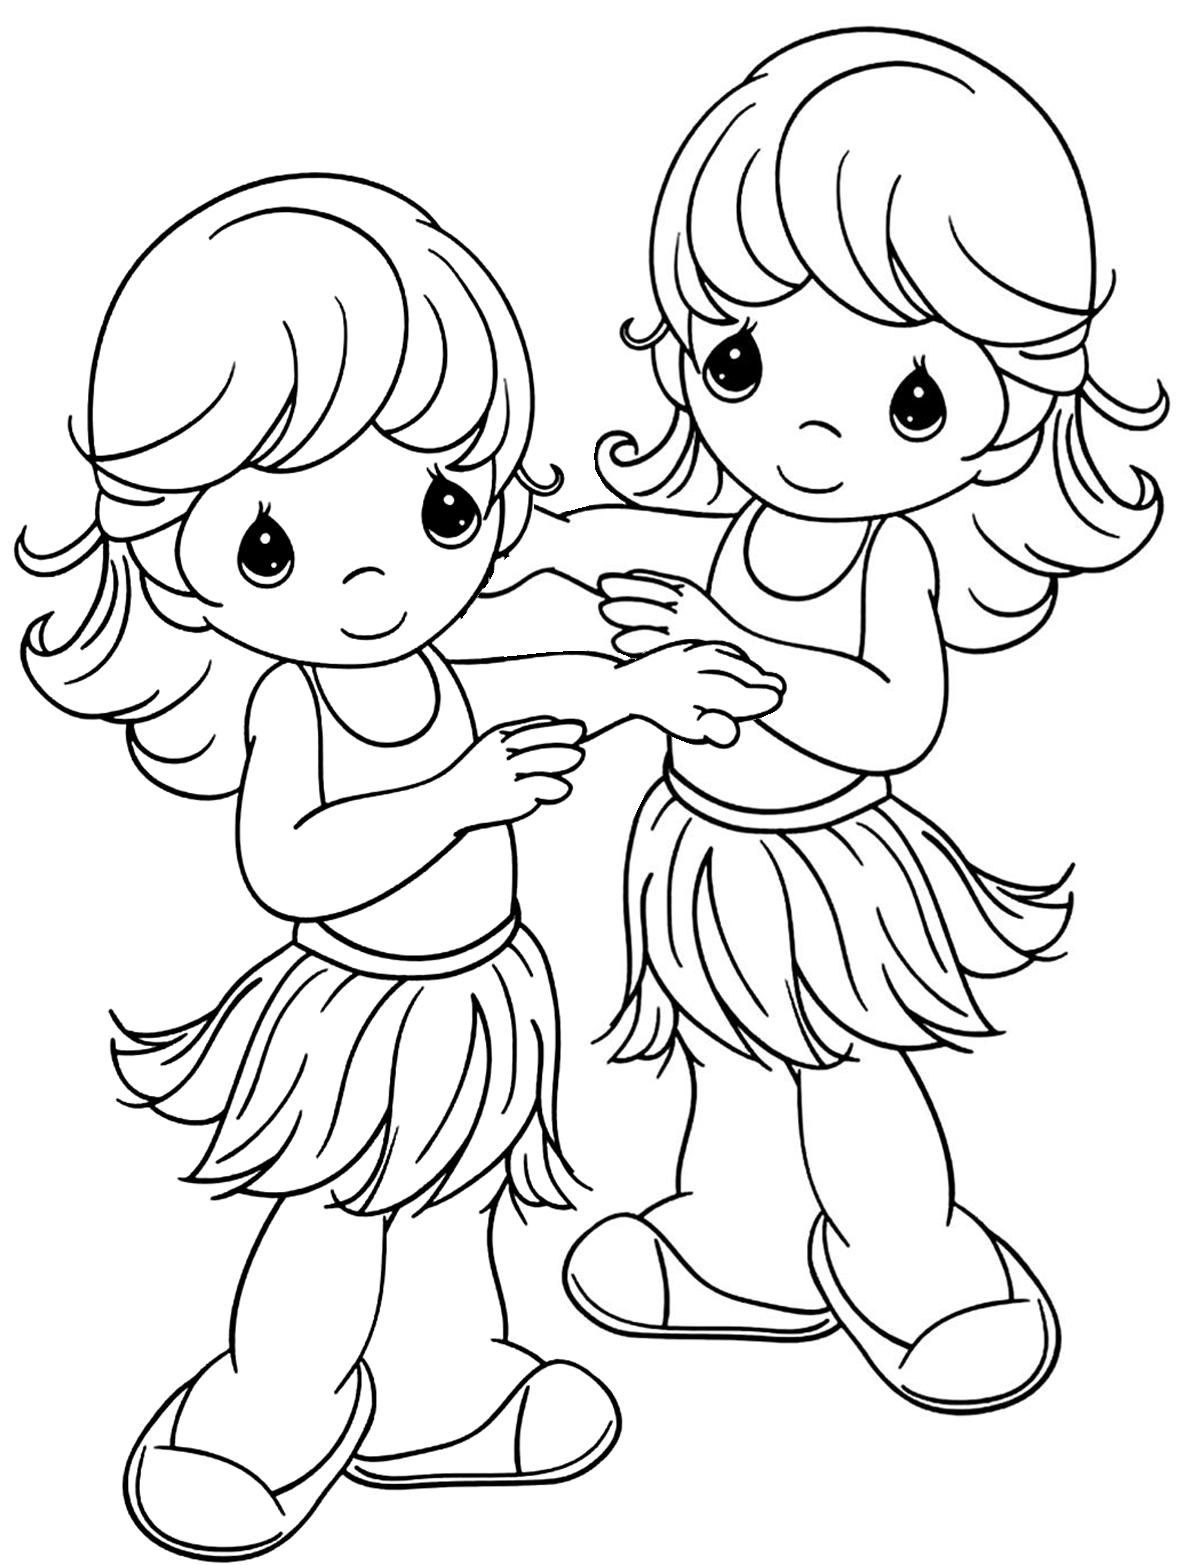 beach precious moments coloring pages precious moments boy on the beach precious moments pages beach moments coloring precious